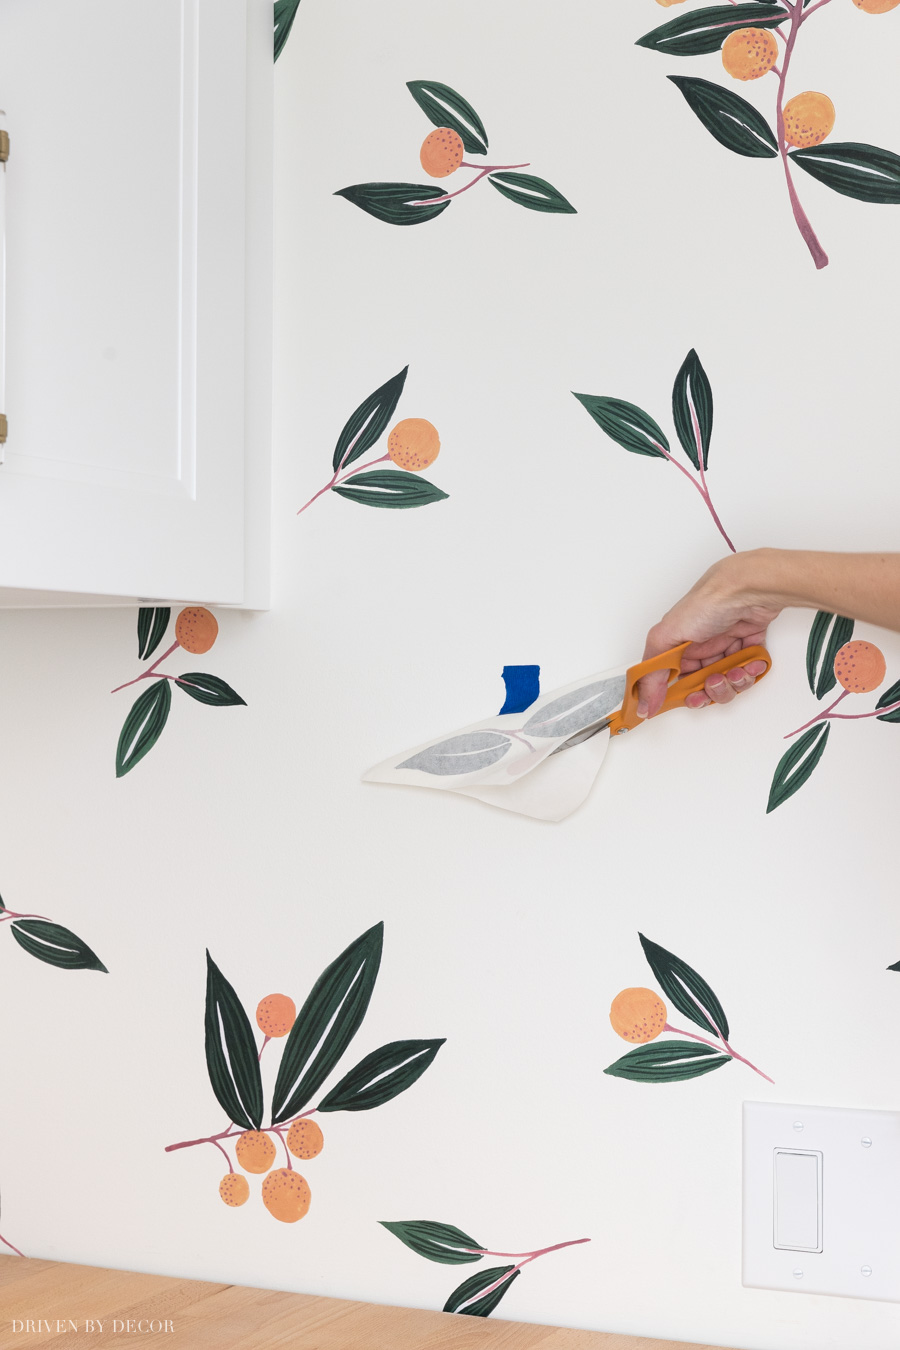 The best instructions on how to apply vinyl wall decals. So easy!